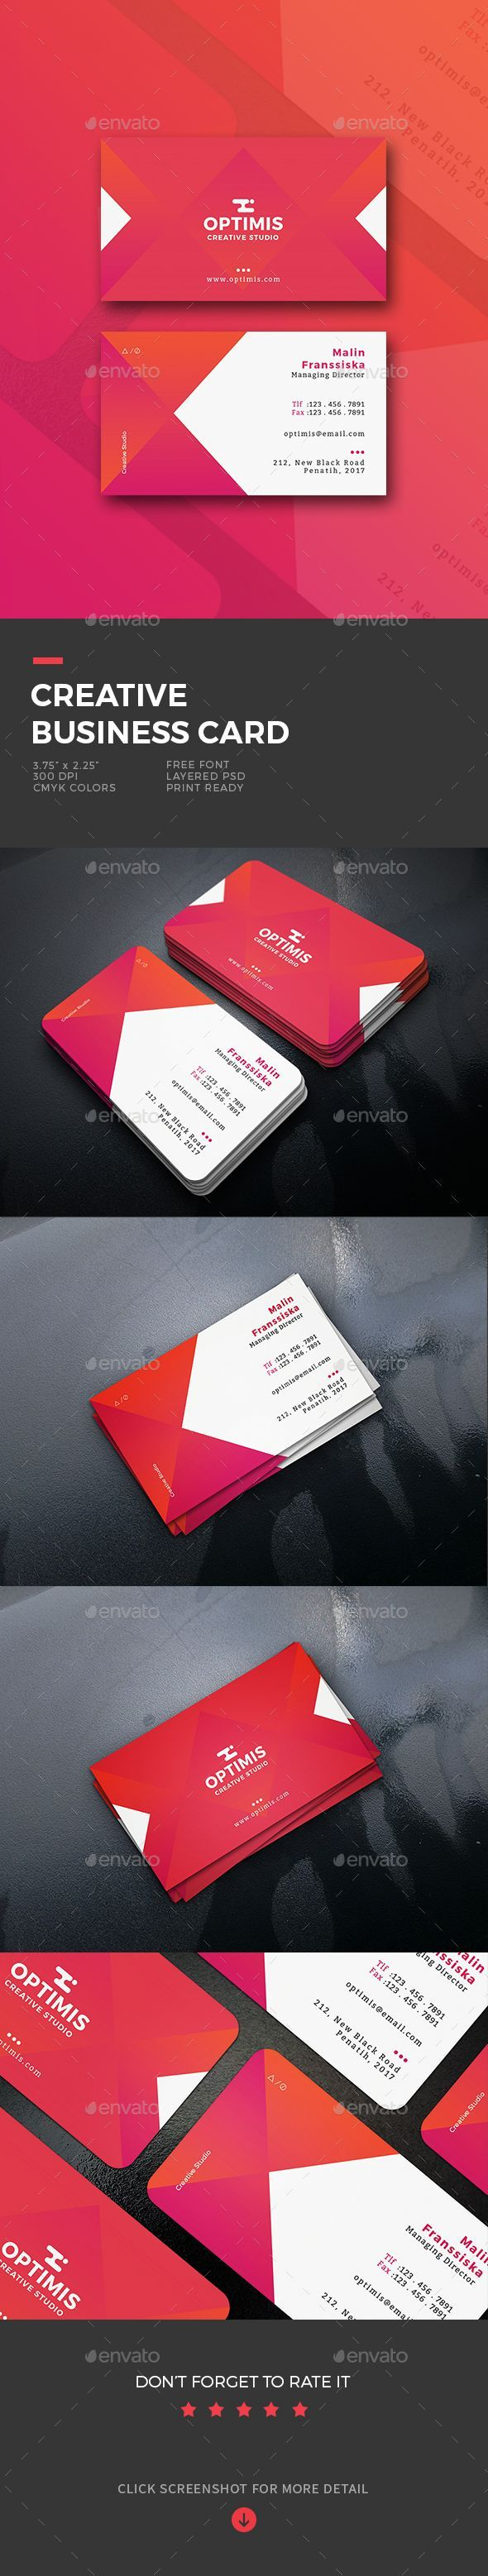 The 25 best business card maker ideas on pinterest art business creative business card business cards print templates download here https reheart Gallery